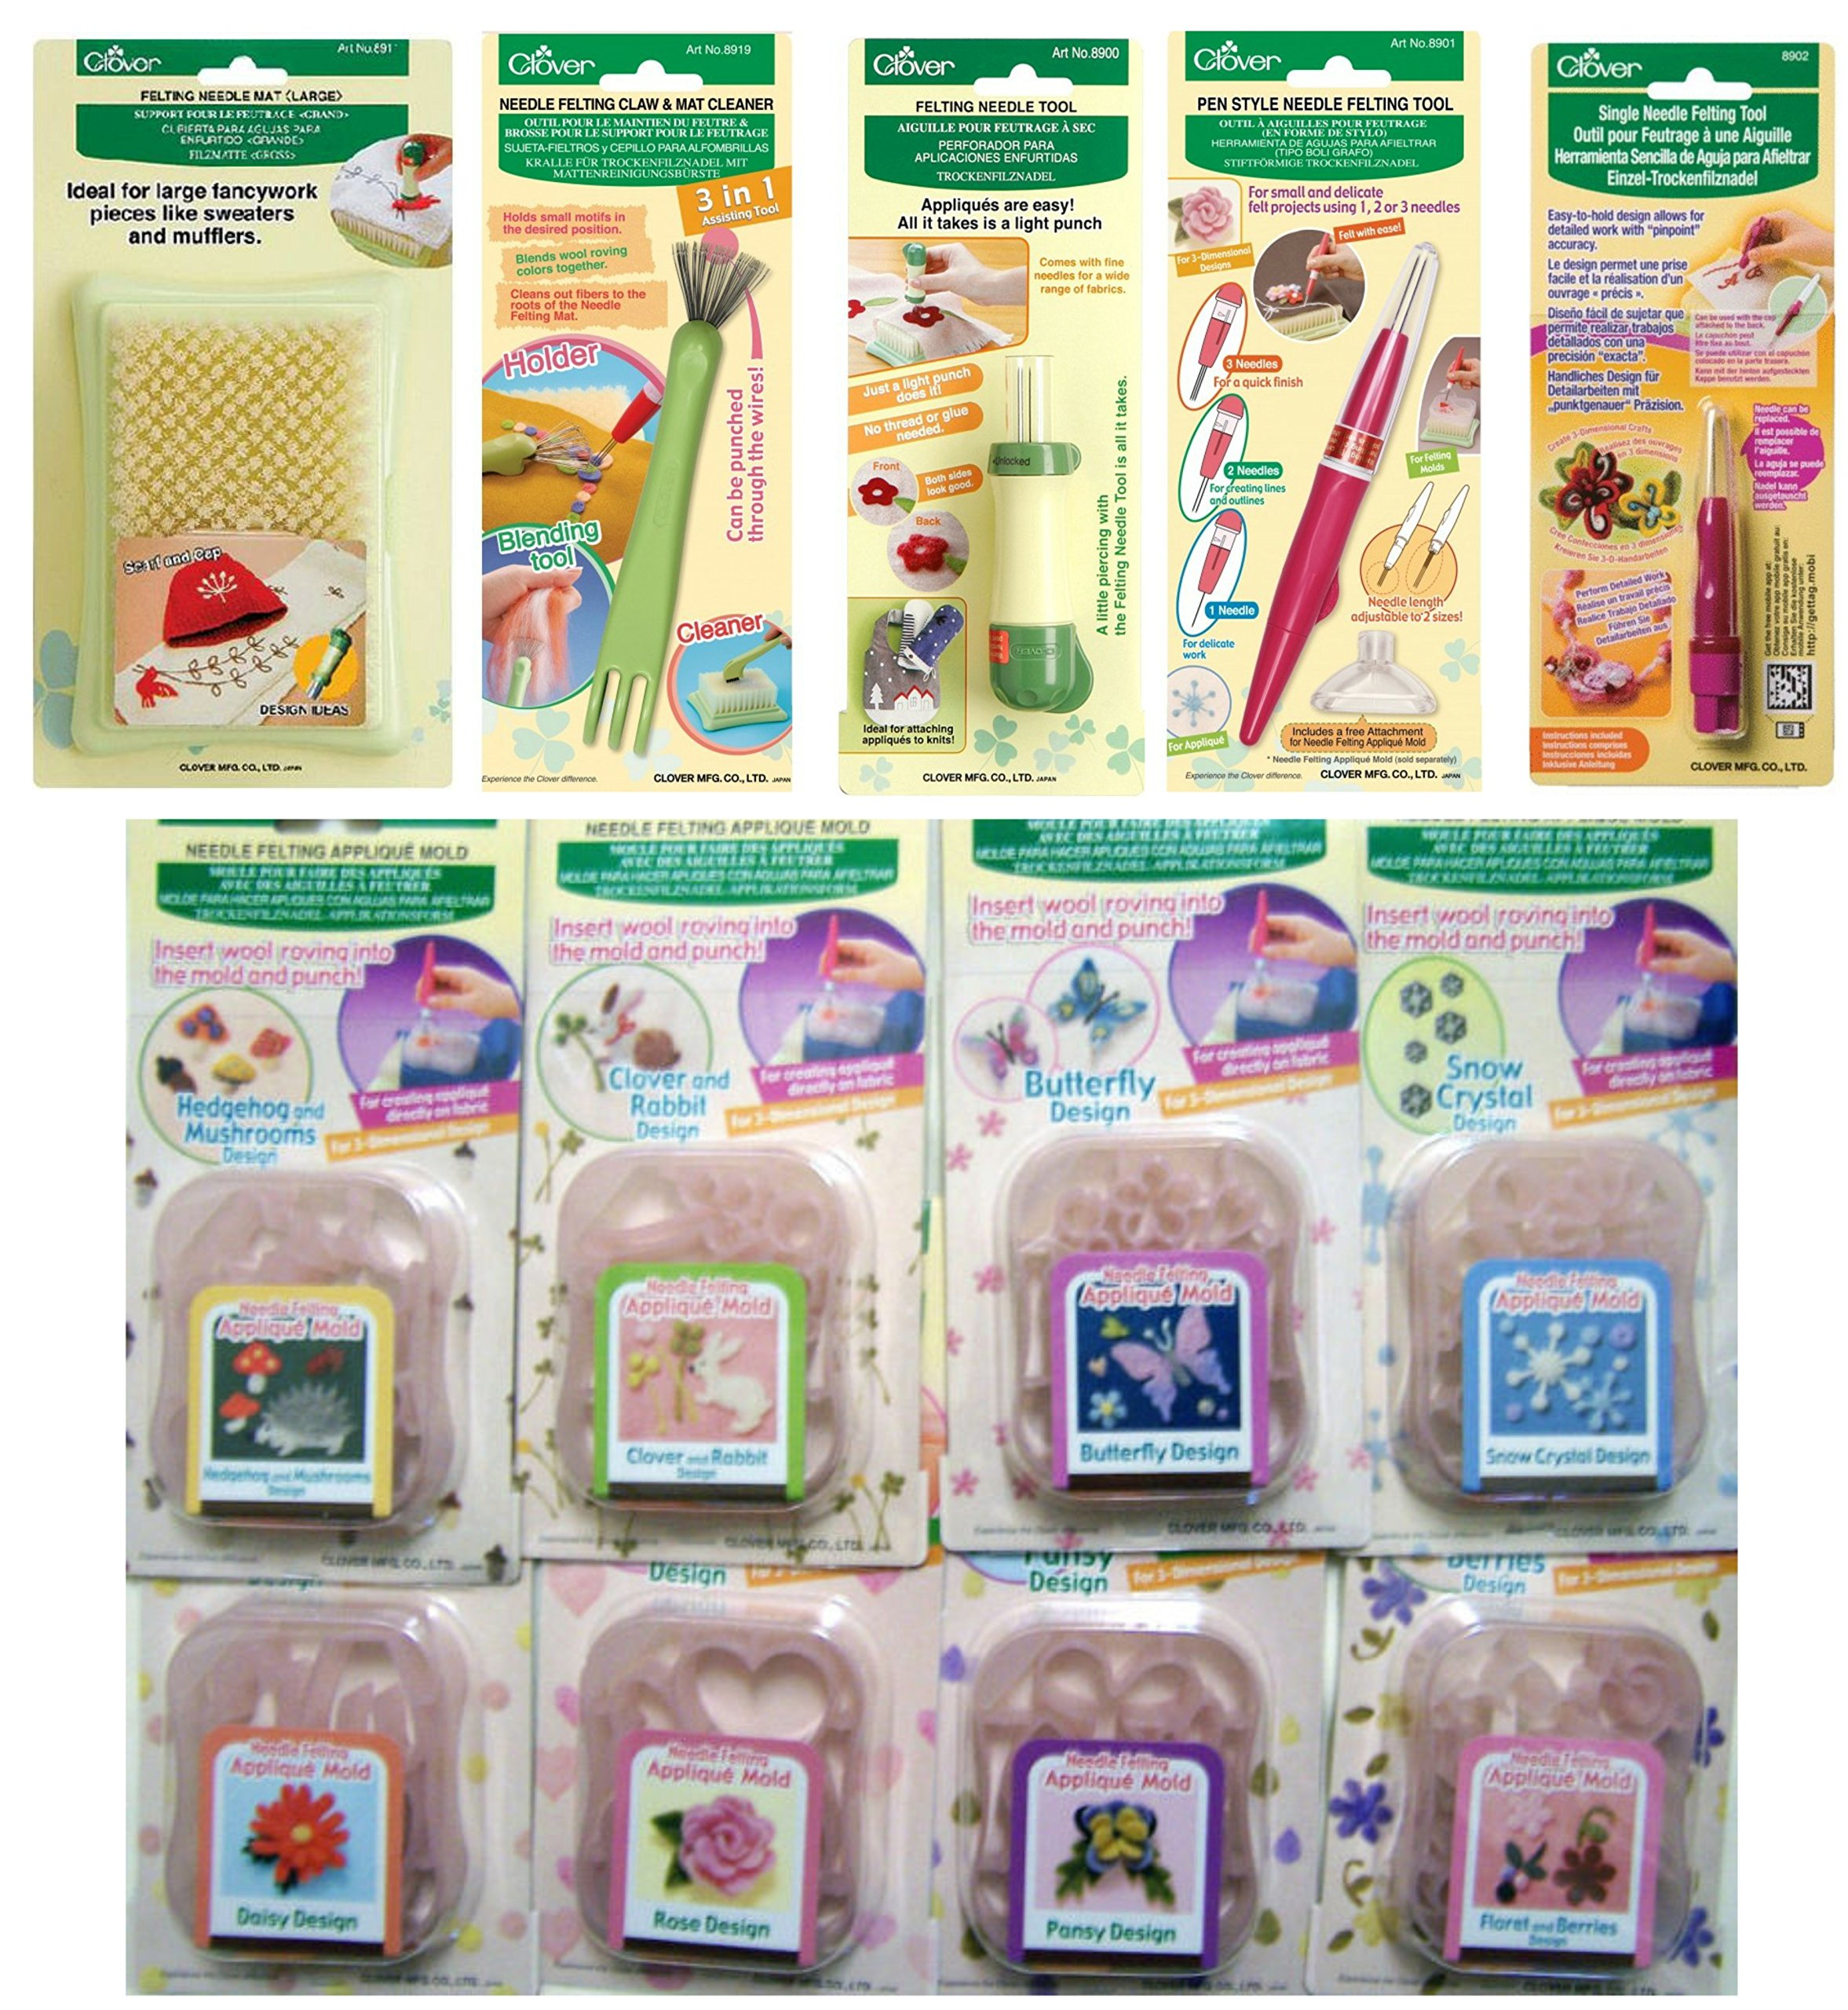 Clover Felting 13 Pc. Bundle- Mat & Cleaner; Felting Tool, Pen & Single Needle; Applique Molds, Rose, Pansy, Daisy, Floret & Berries, Hedgehog & Mushroom, Snow Crystal, Butterfly, Clover & Rabbit